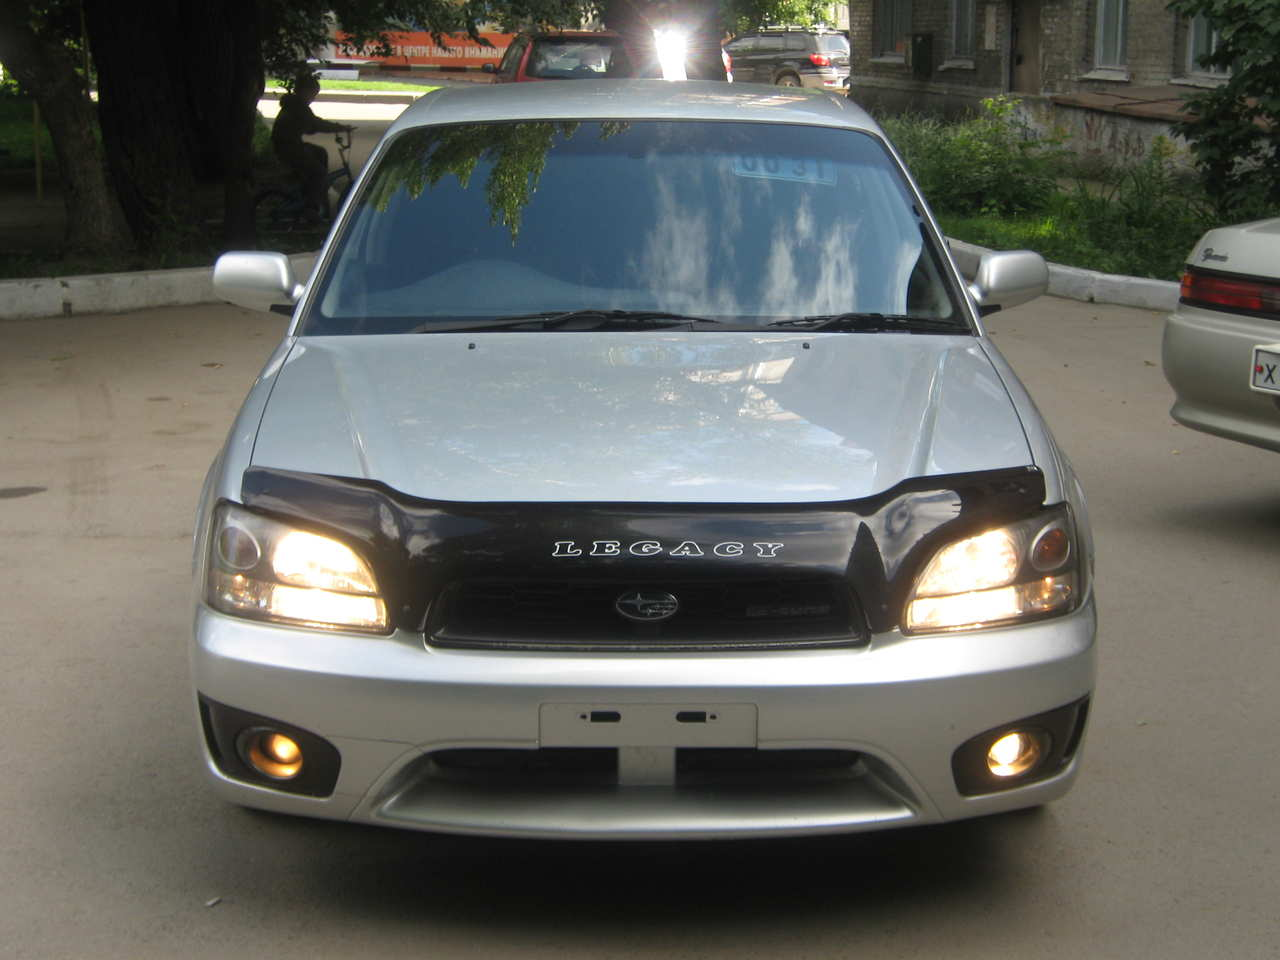 used 2001 subaru legacy b4 photos 2000cc gasoline automatic for sale. Black Bedroom Furniture Sets. Home Design Ideas